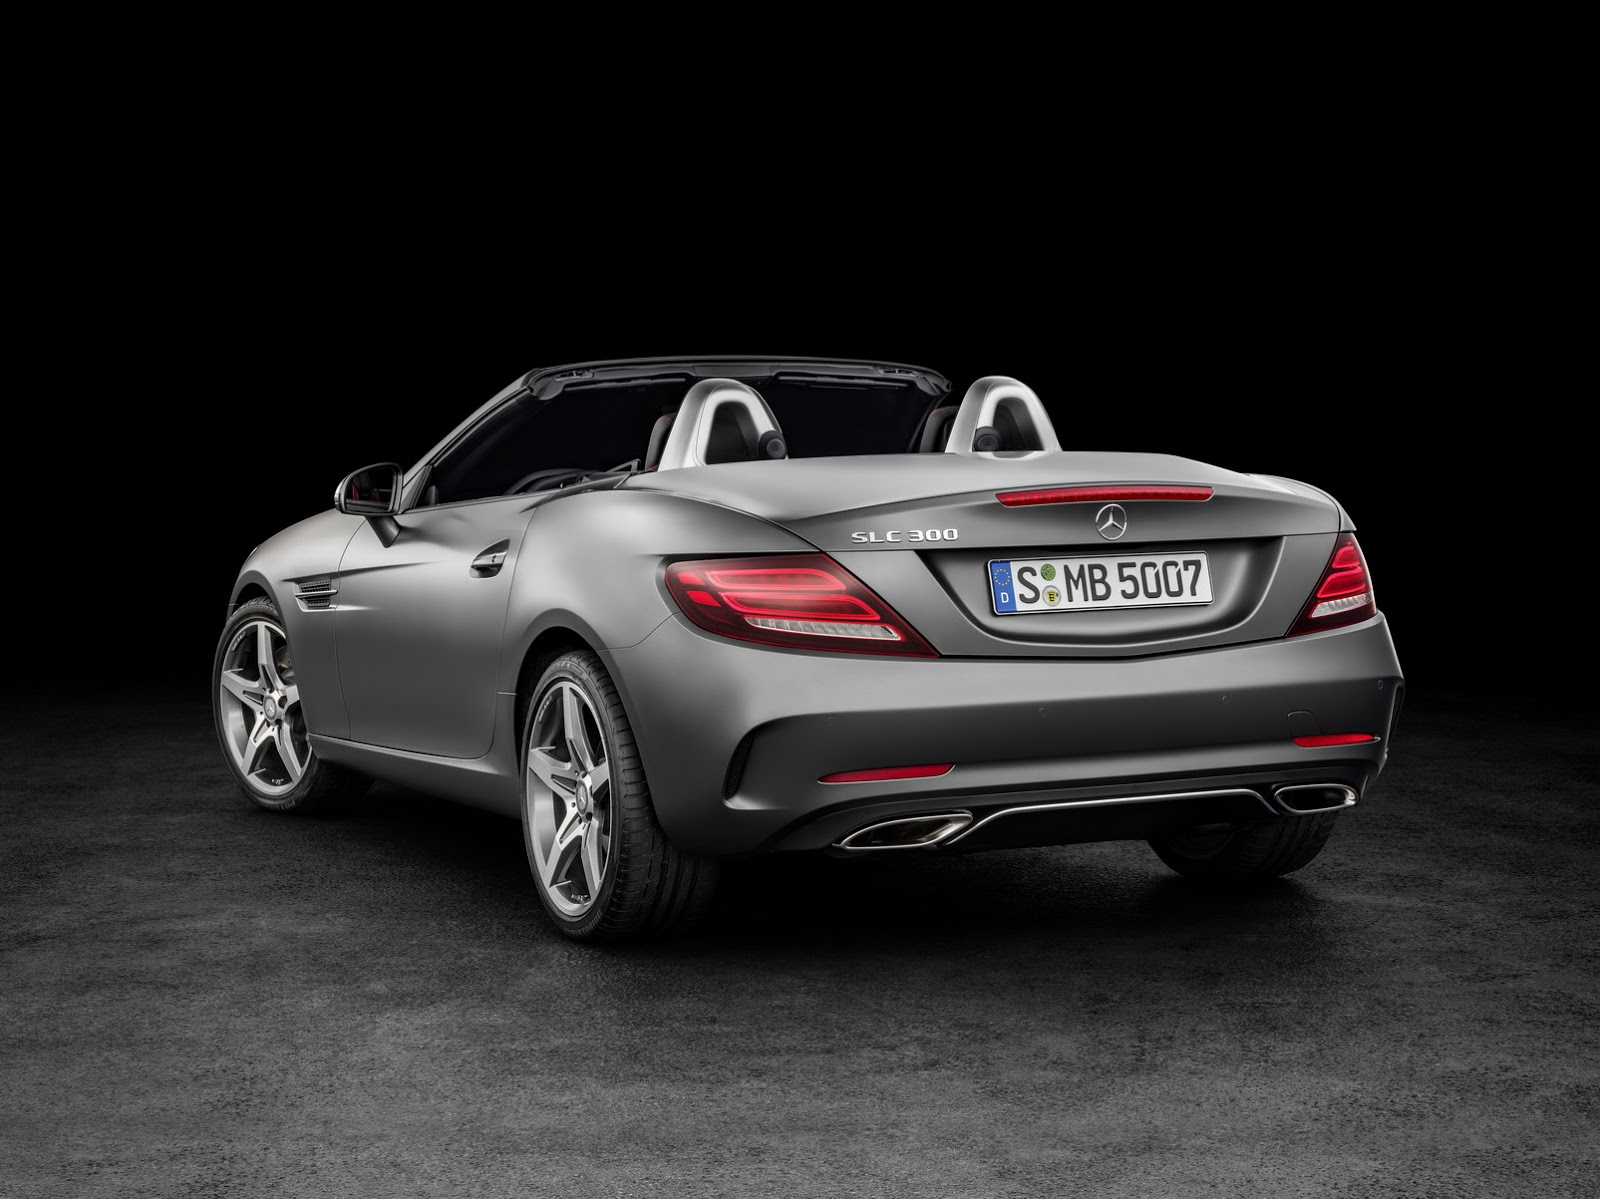 2017 mercedes benz slc brings a new face and turbo d v6 for the amg carscoops. Black Bedroom Furniture Sets. Home Design Ideas